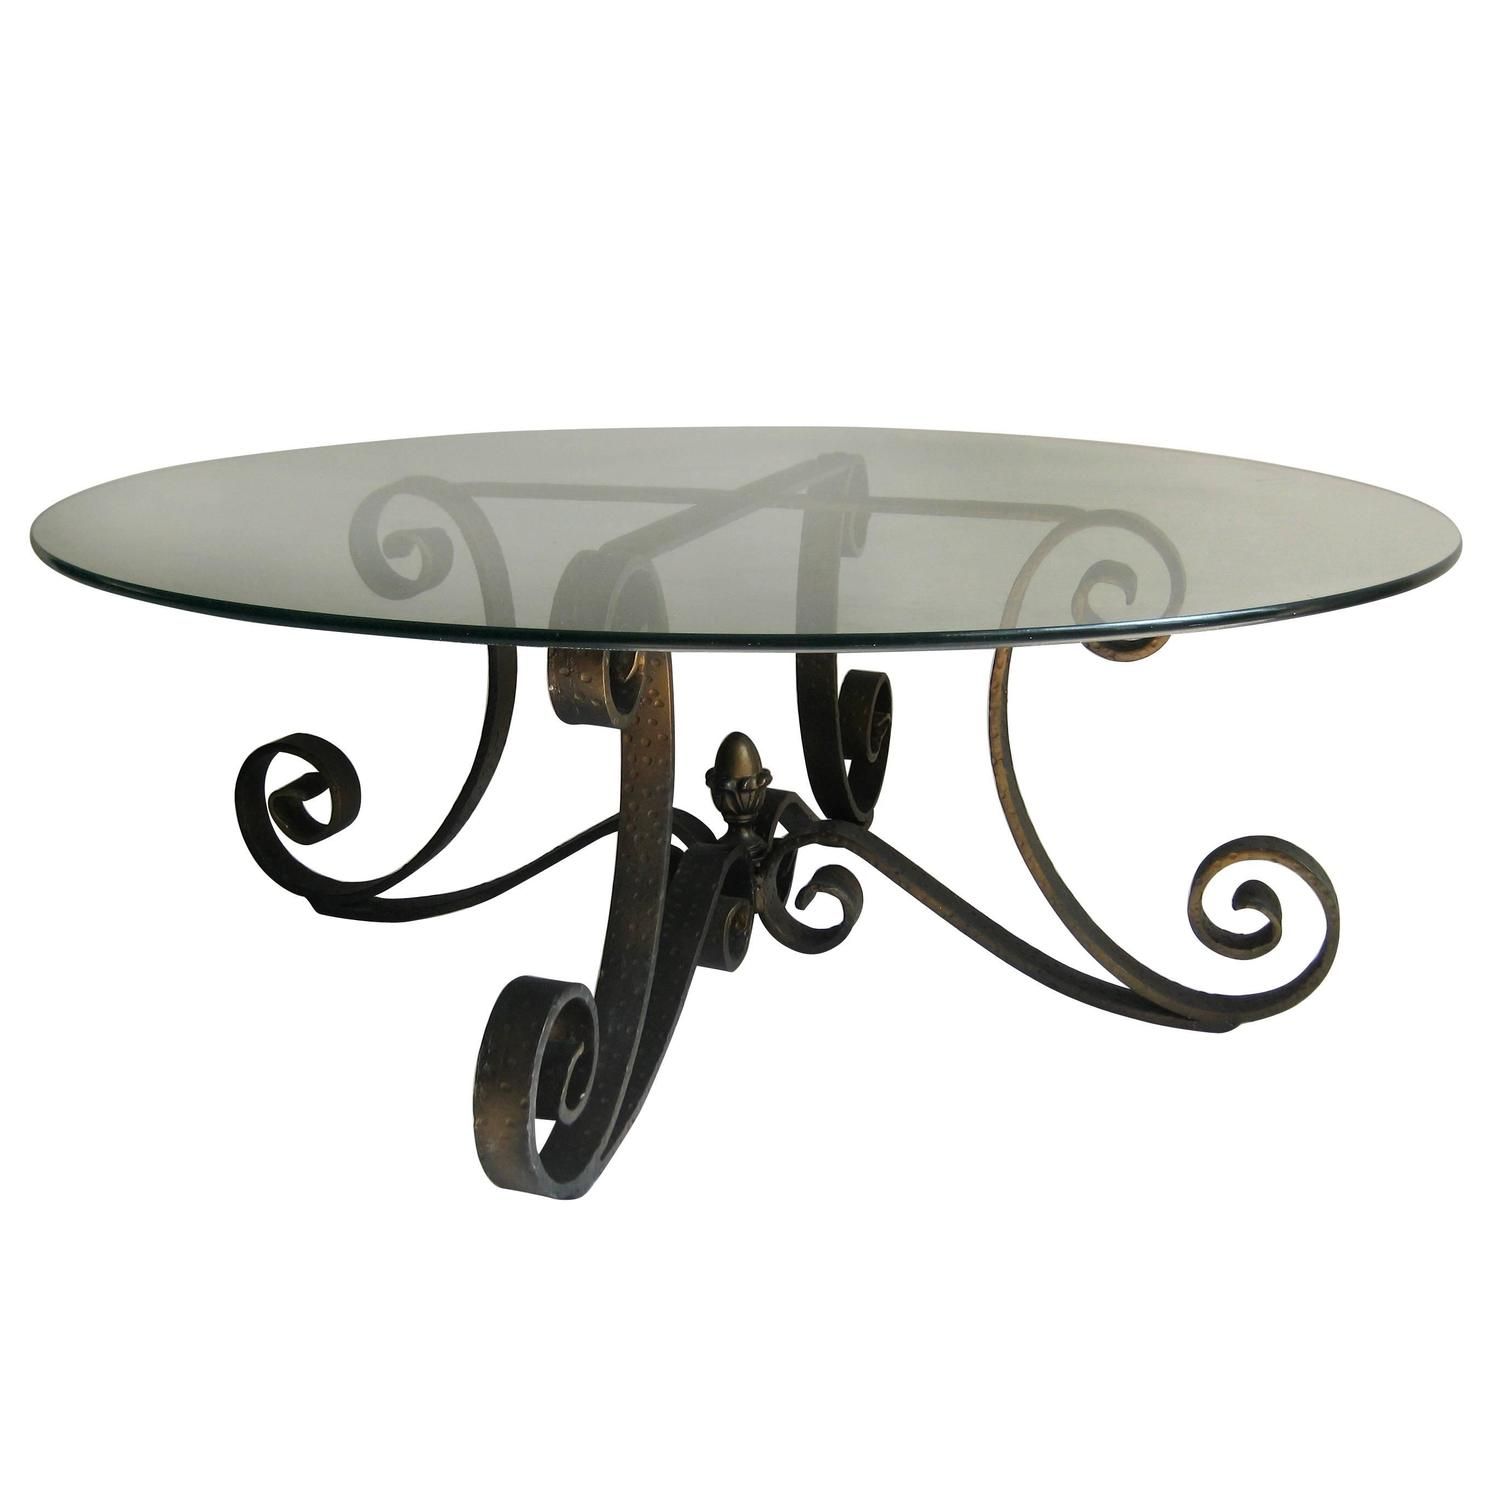 Mid Century Scrolled Forged Iron Table Base with Round Glass Top